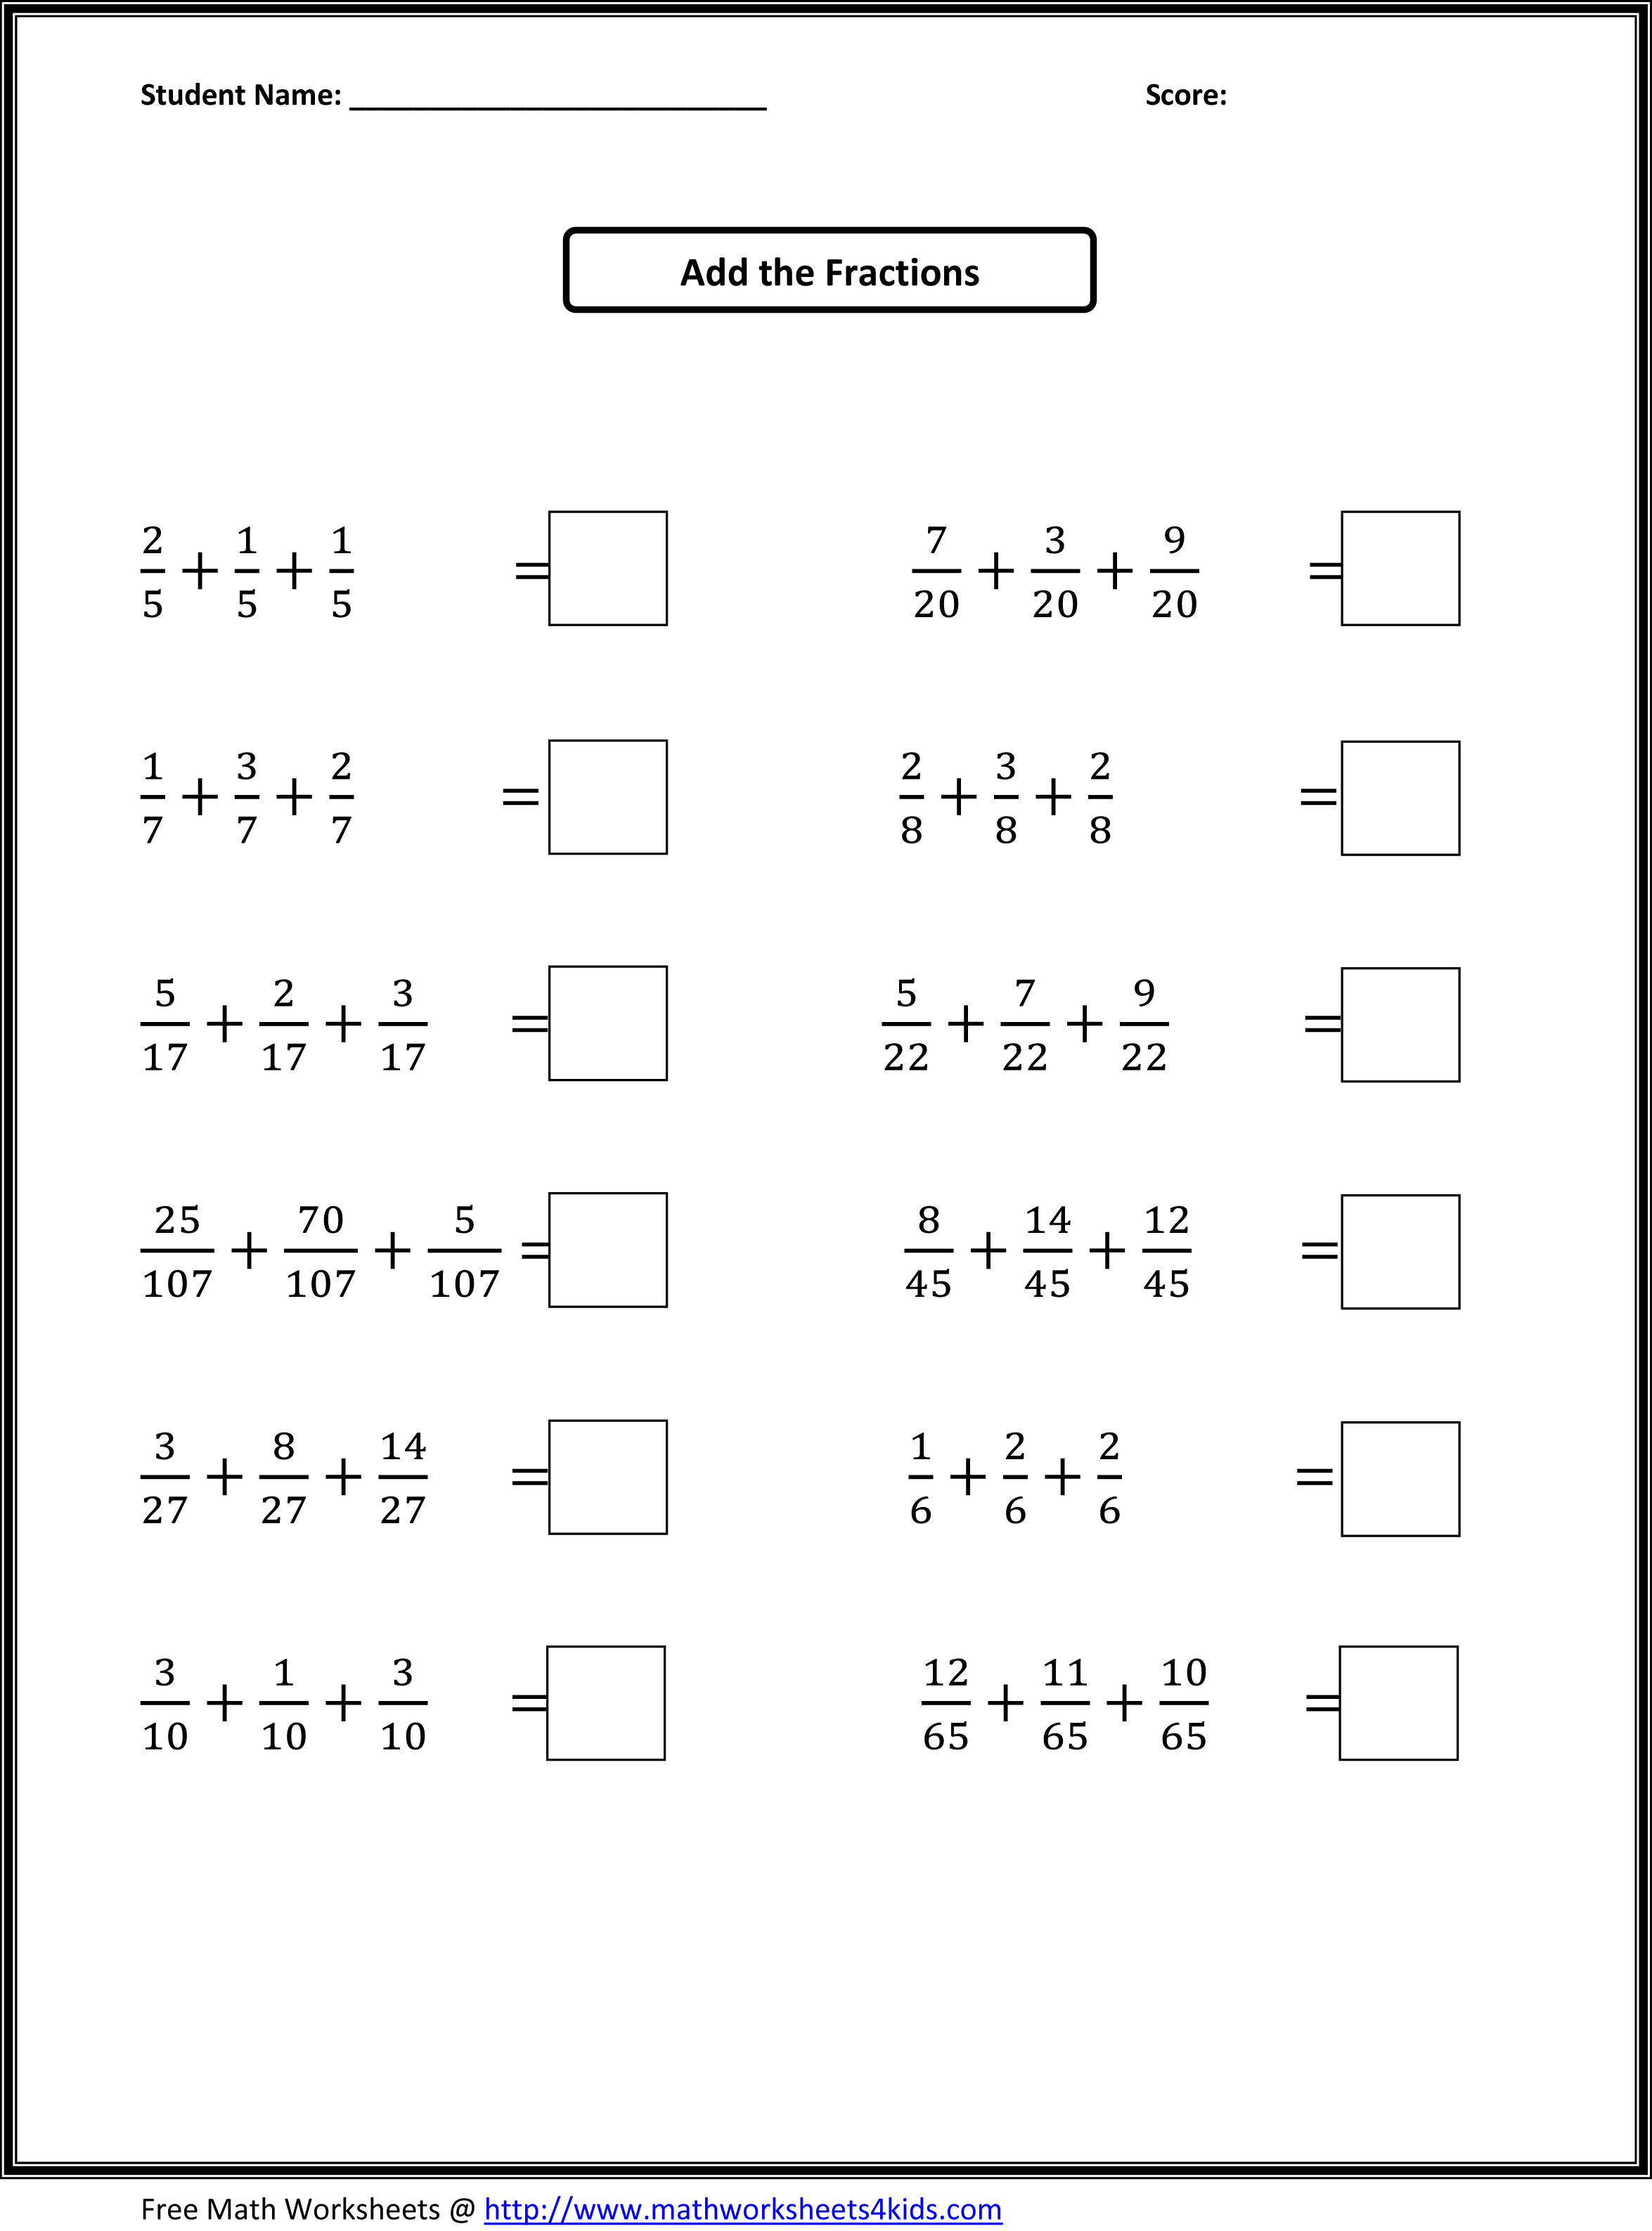 Addition of fractions worksheets